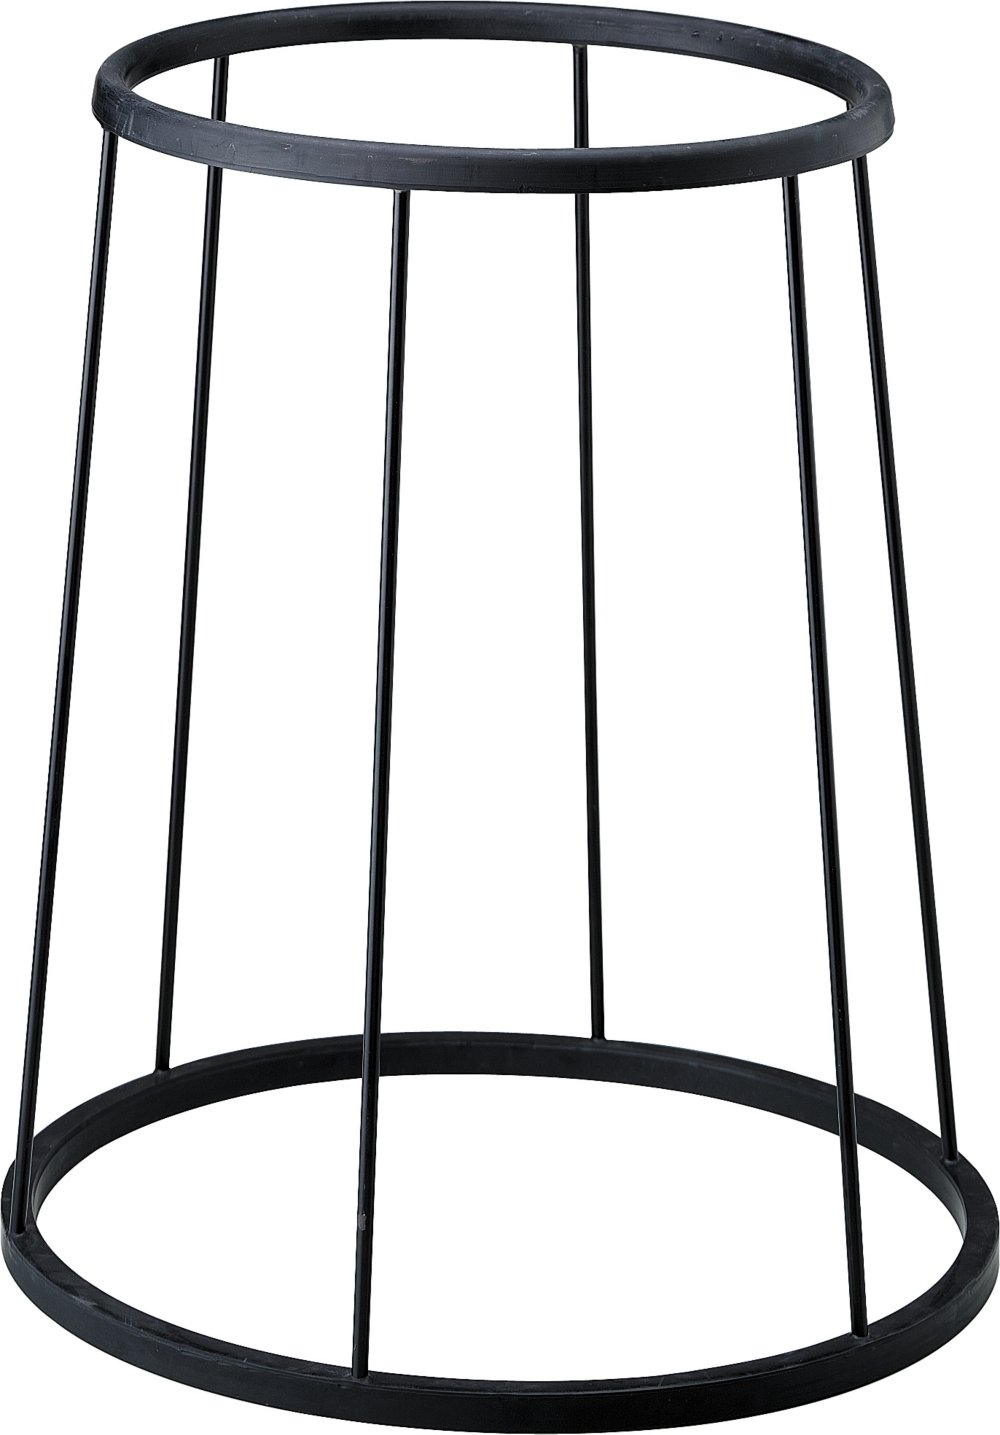 REMO Lightweight Djembe Floor Stand, Black, Fits All Size Djembes DI-6110-00